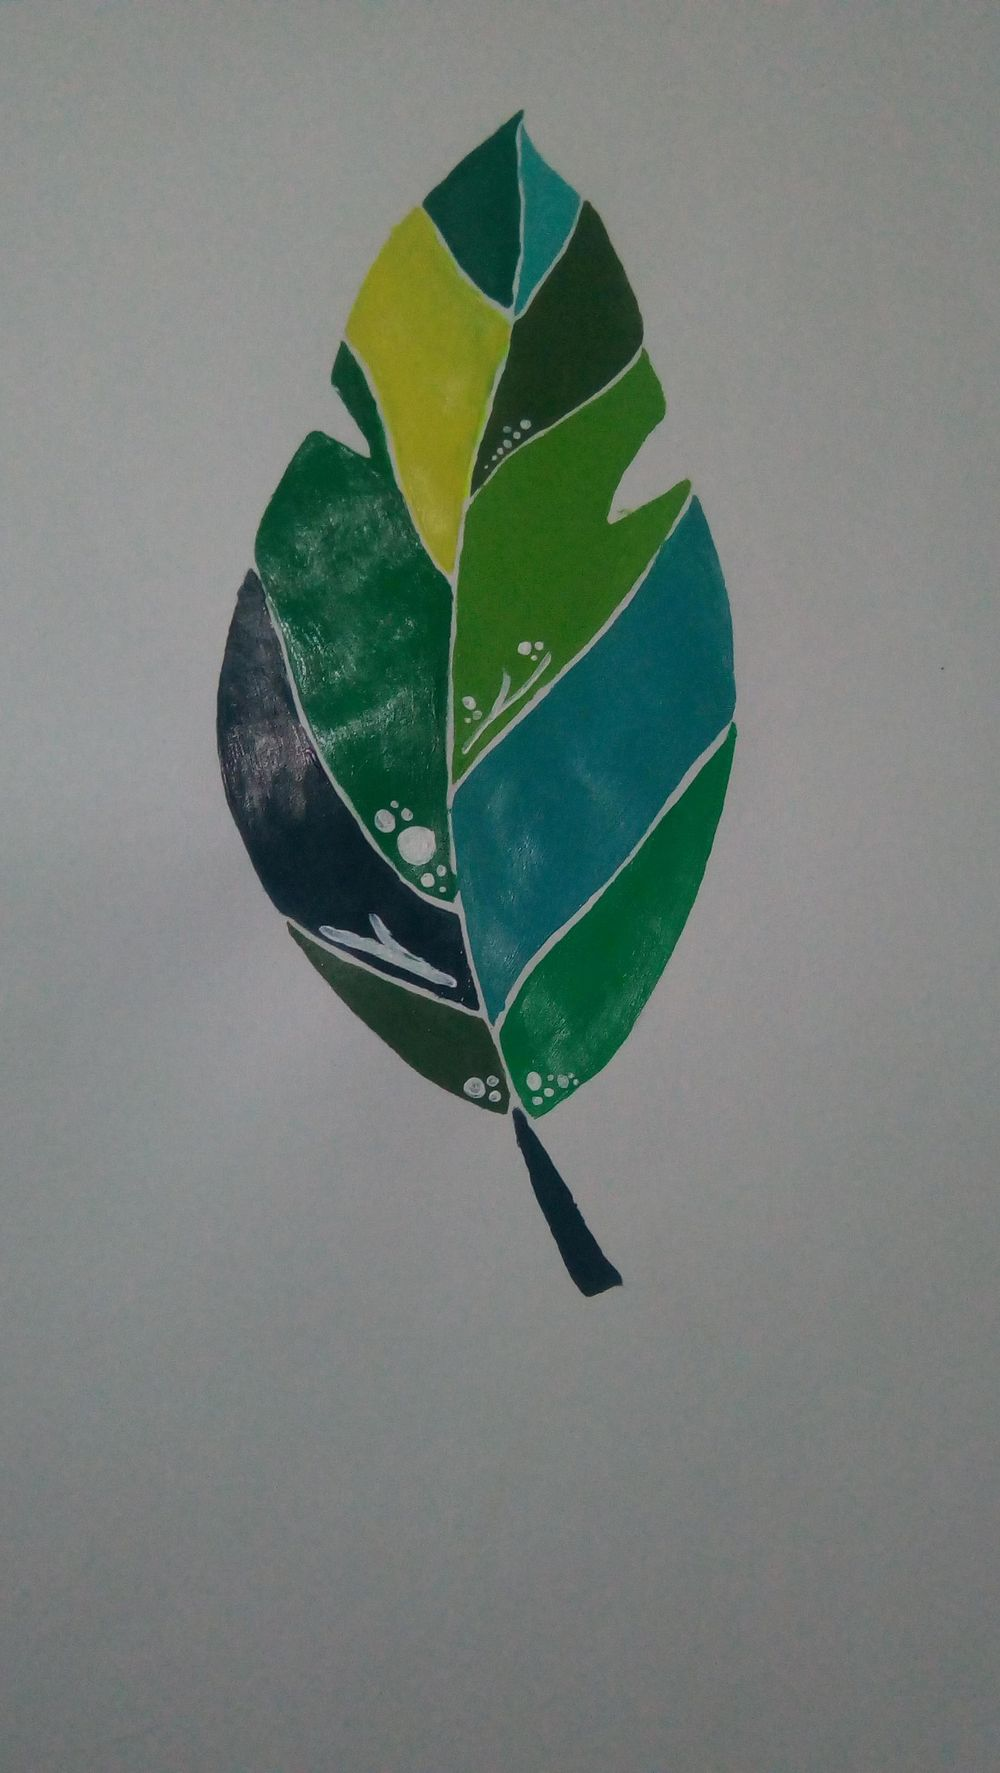 Tropical Leaf - image 3 - student project